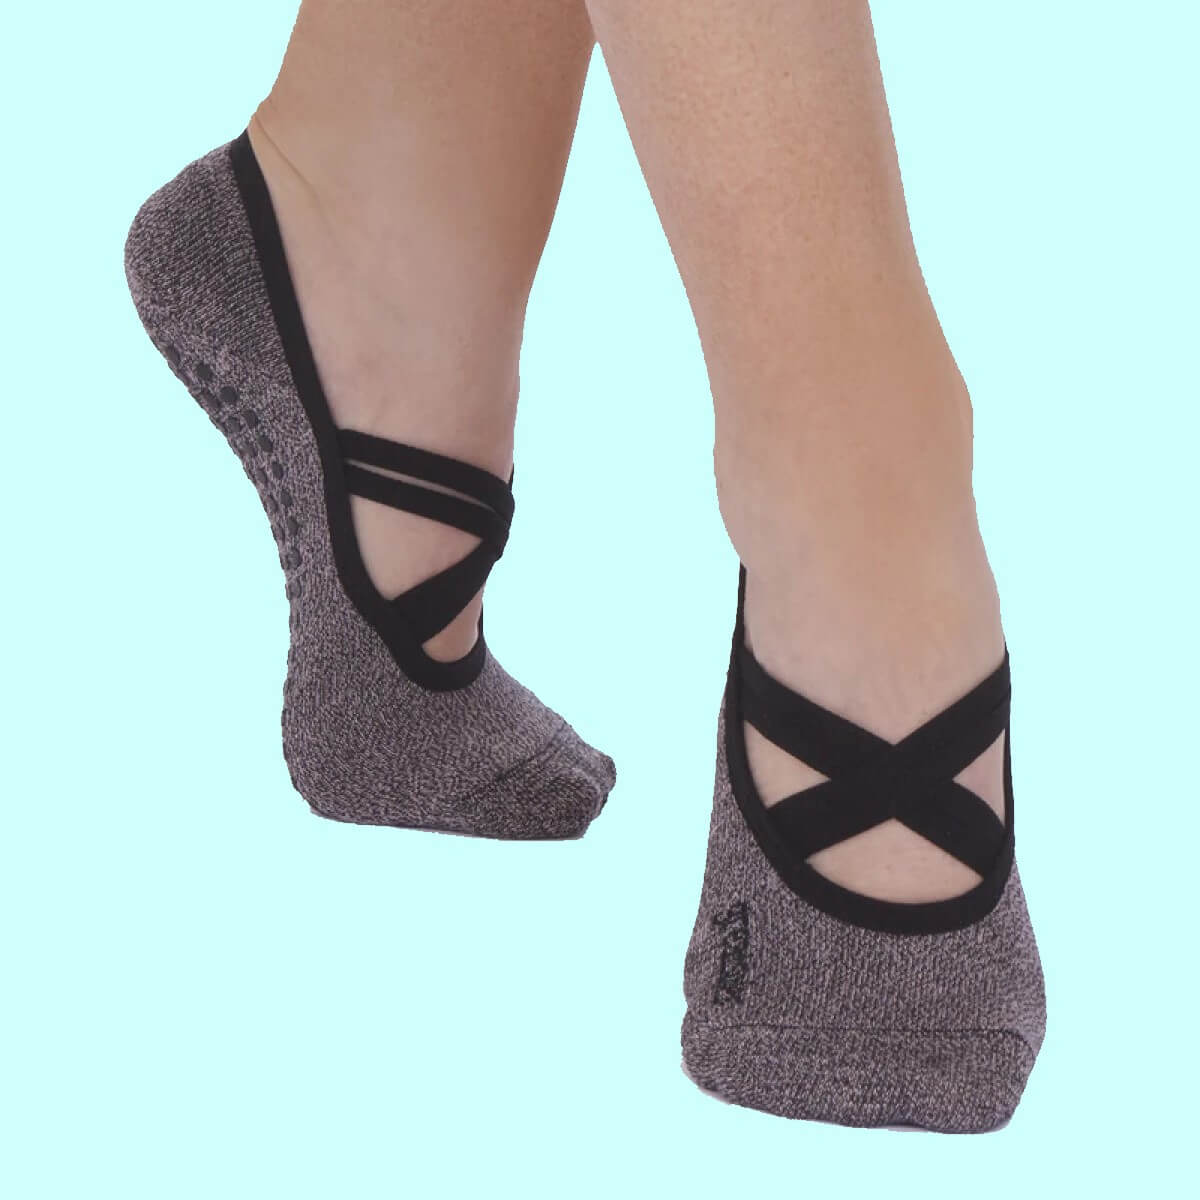 Active socks for pilates and yoga by Great Soles with grip and cross strap for forefoot.